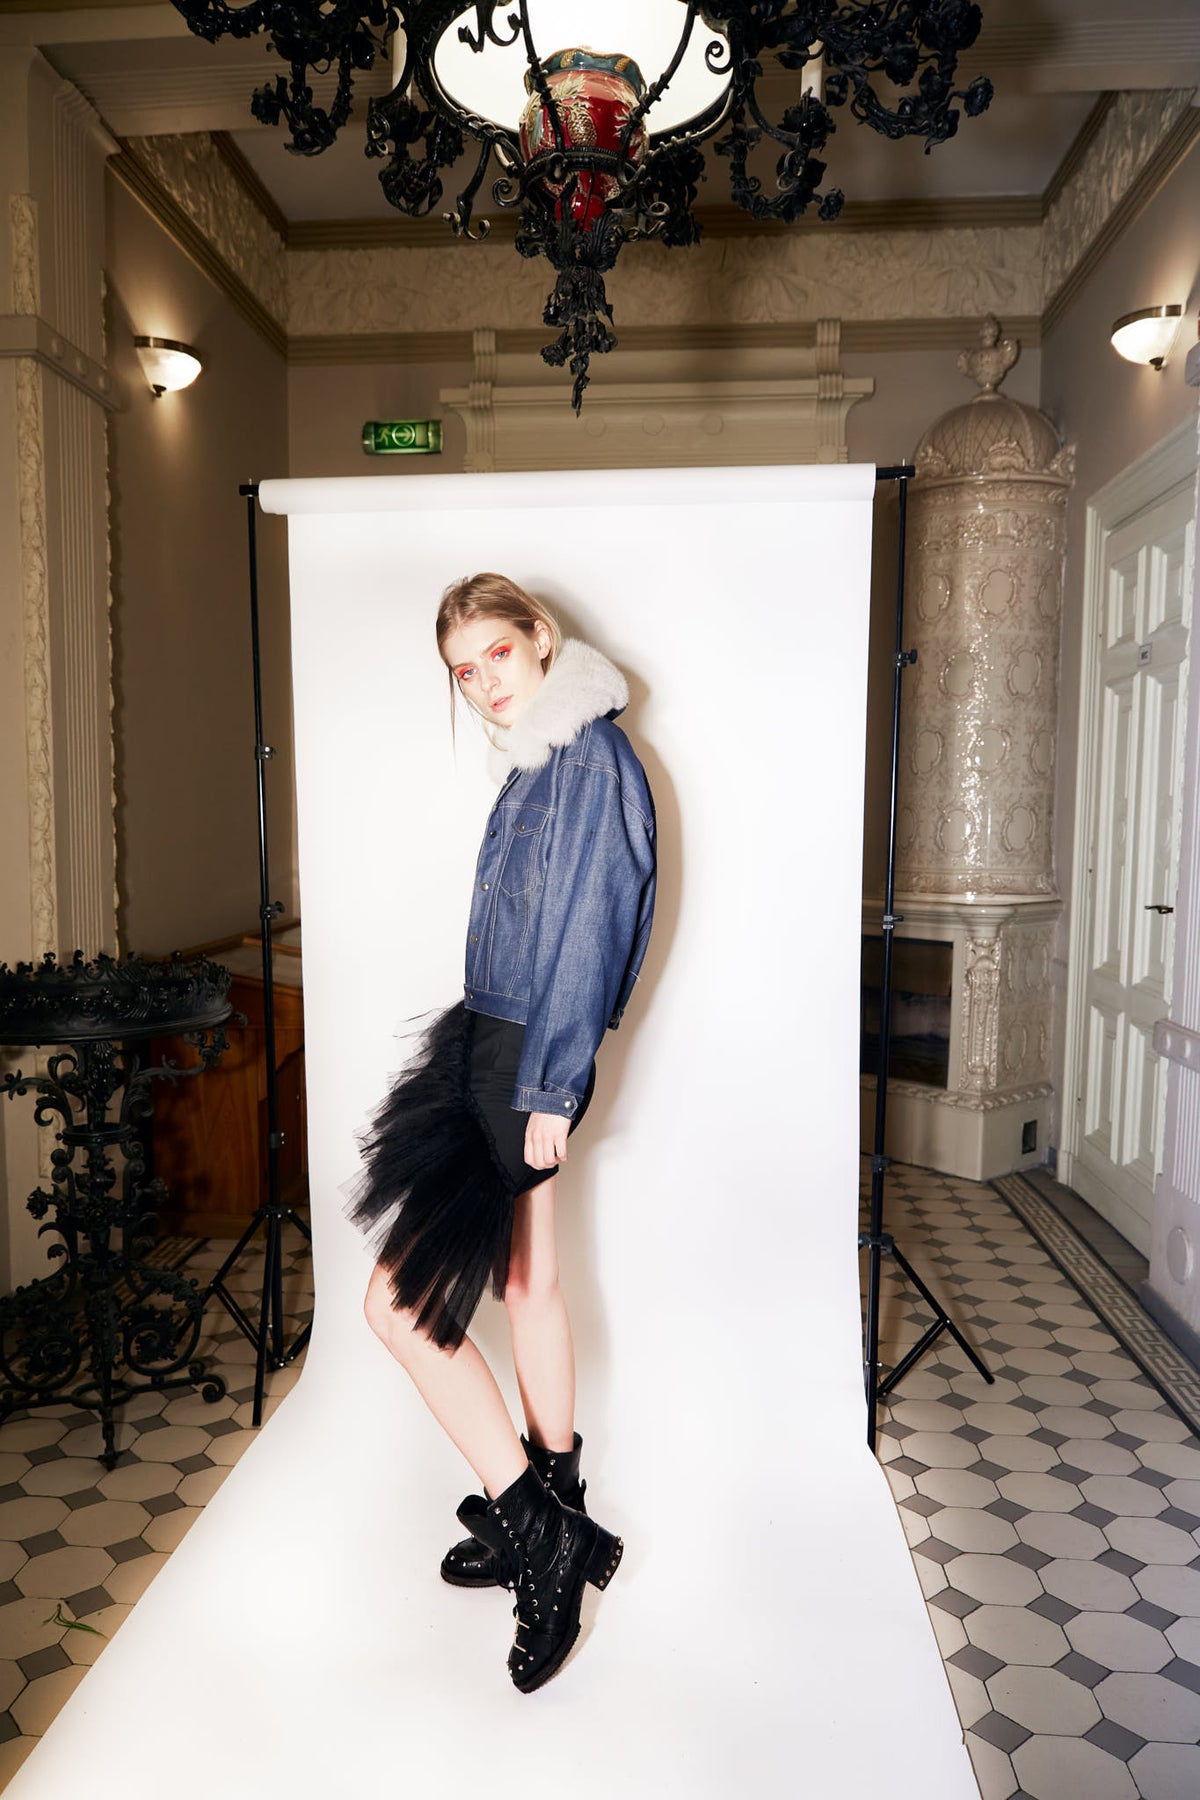 Genes-Blue-Denim-Jacket-With-Attachable-Grey-Fox-Fur-Collar-lookbook.jpg